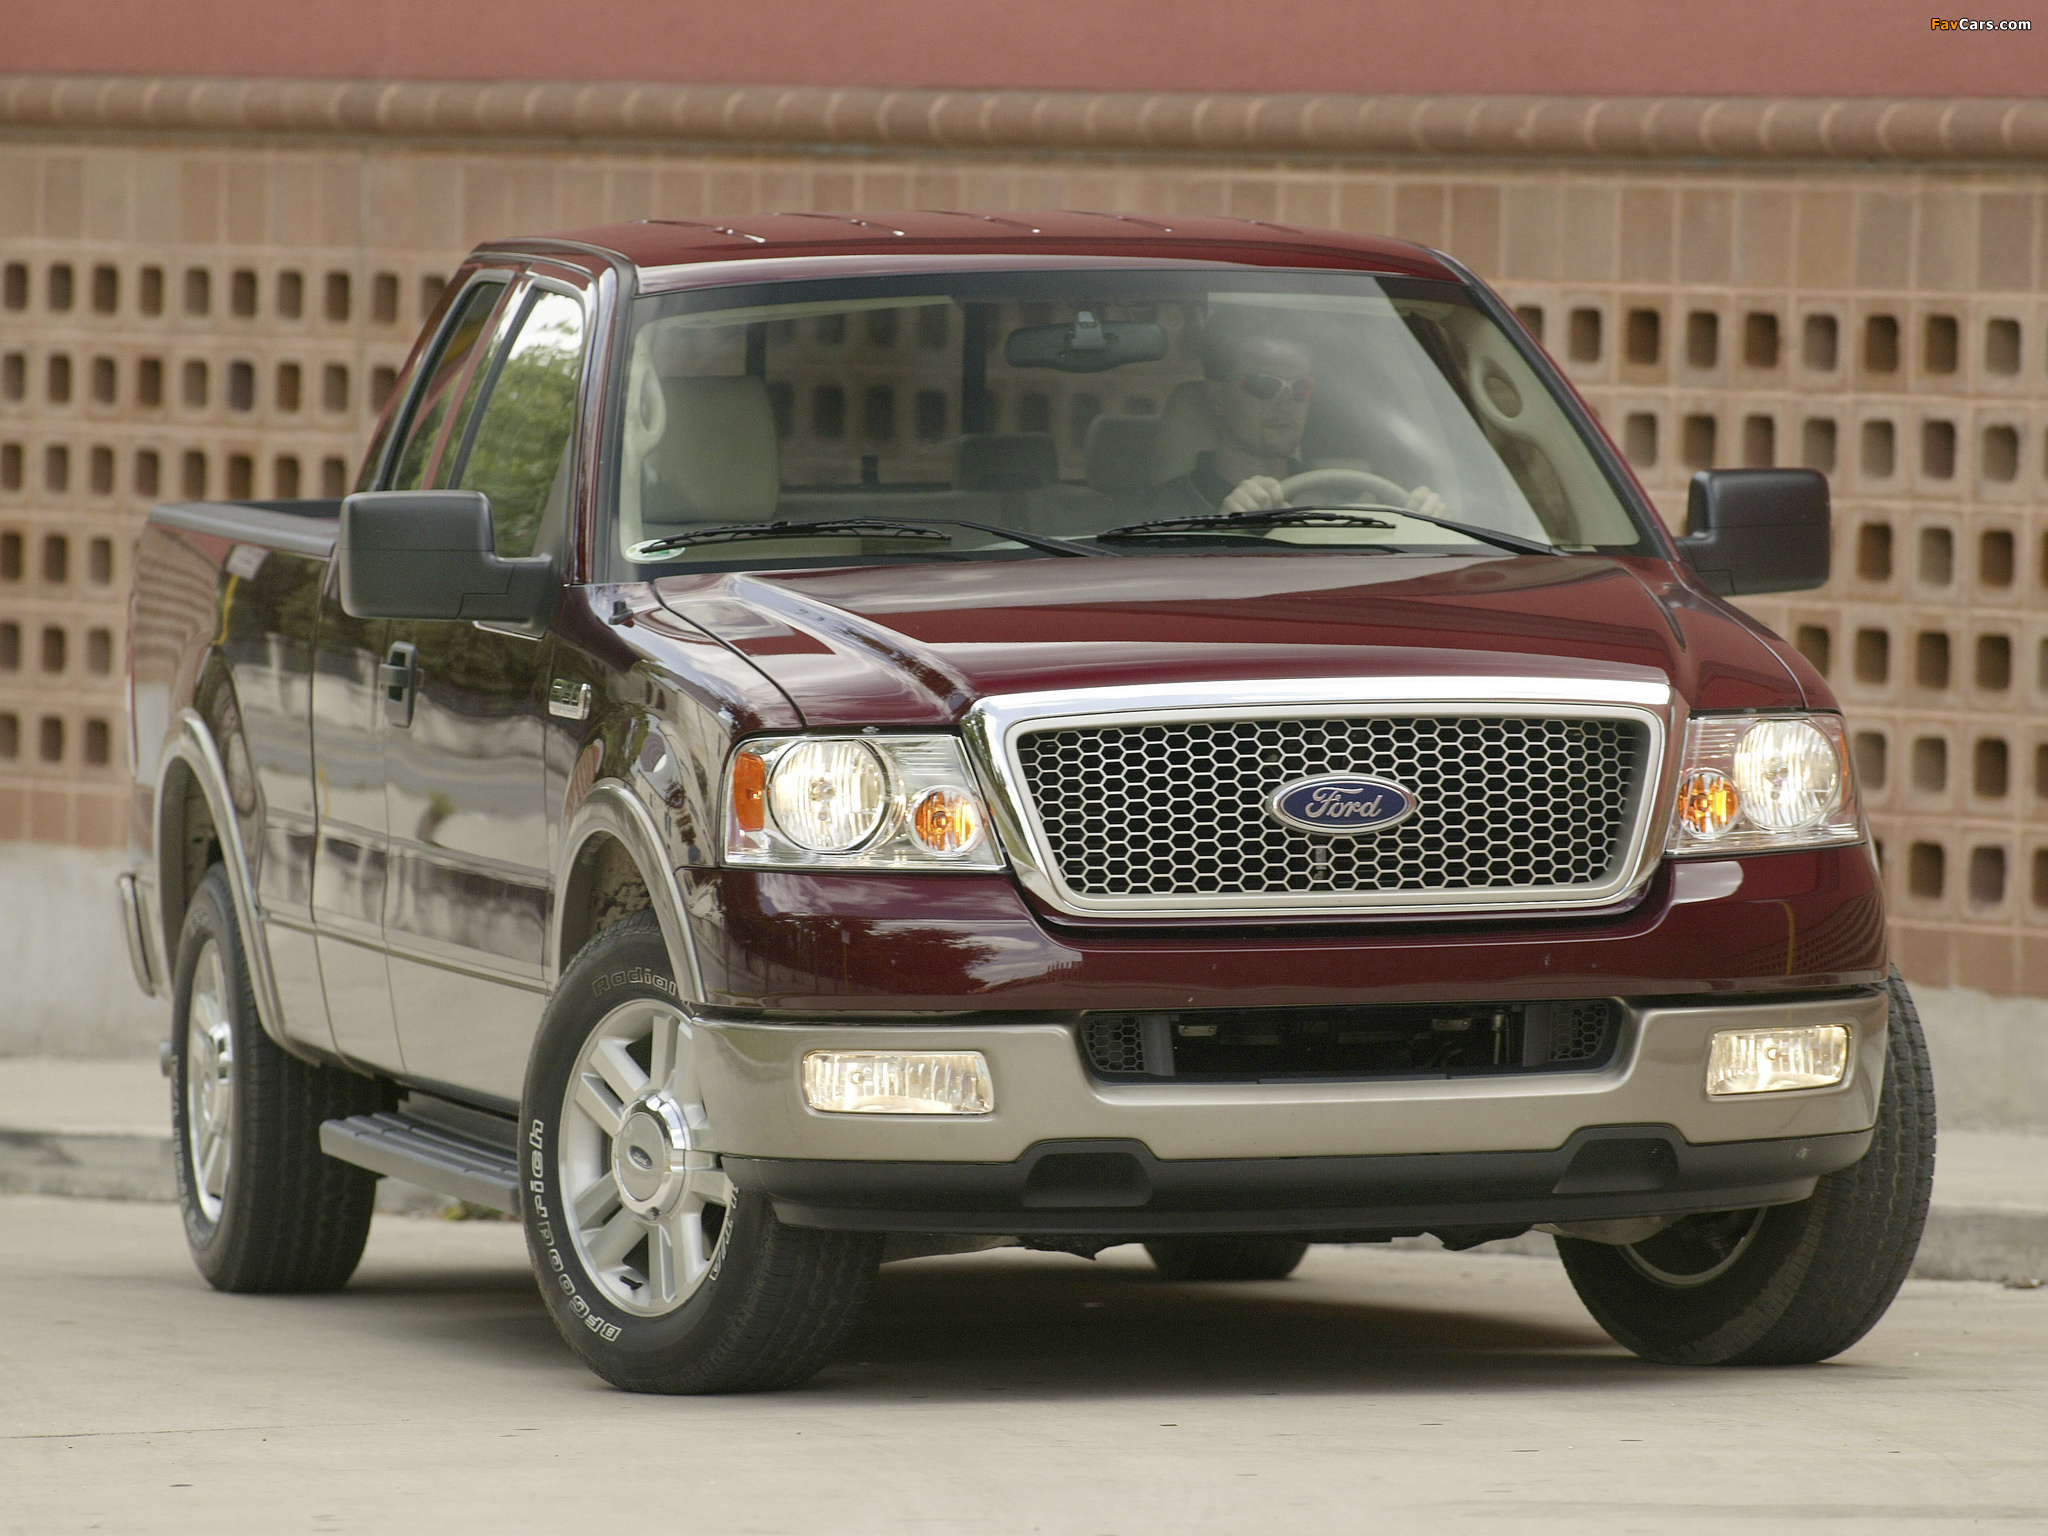 2004 Ford Lariat F1502004 F 150 Biscayne Auto Sales Pre 4x4 Supercab 05 Pictures 2048x1536